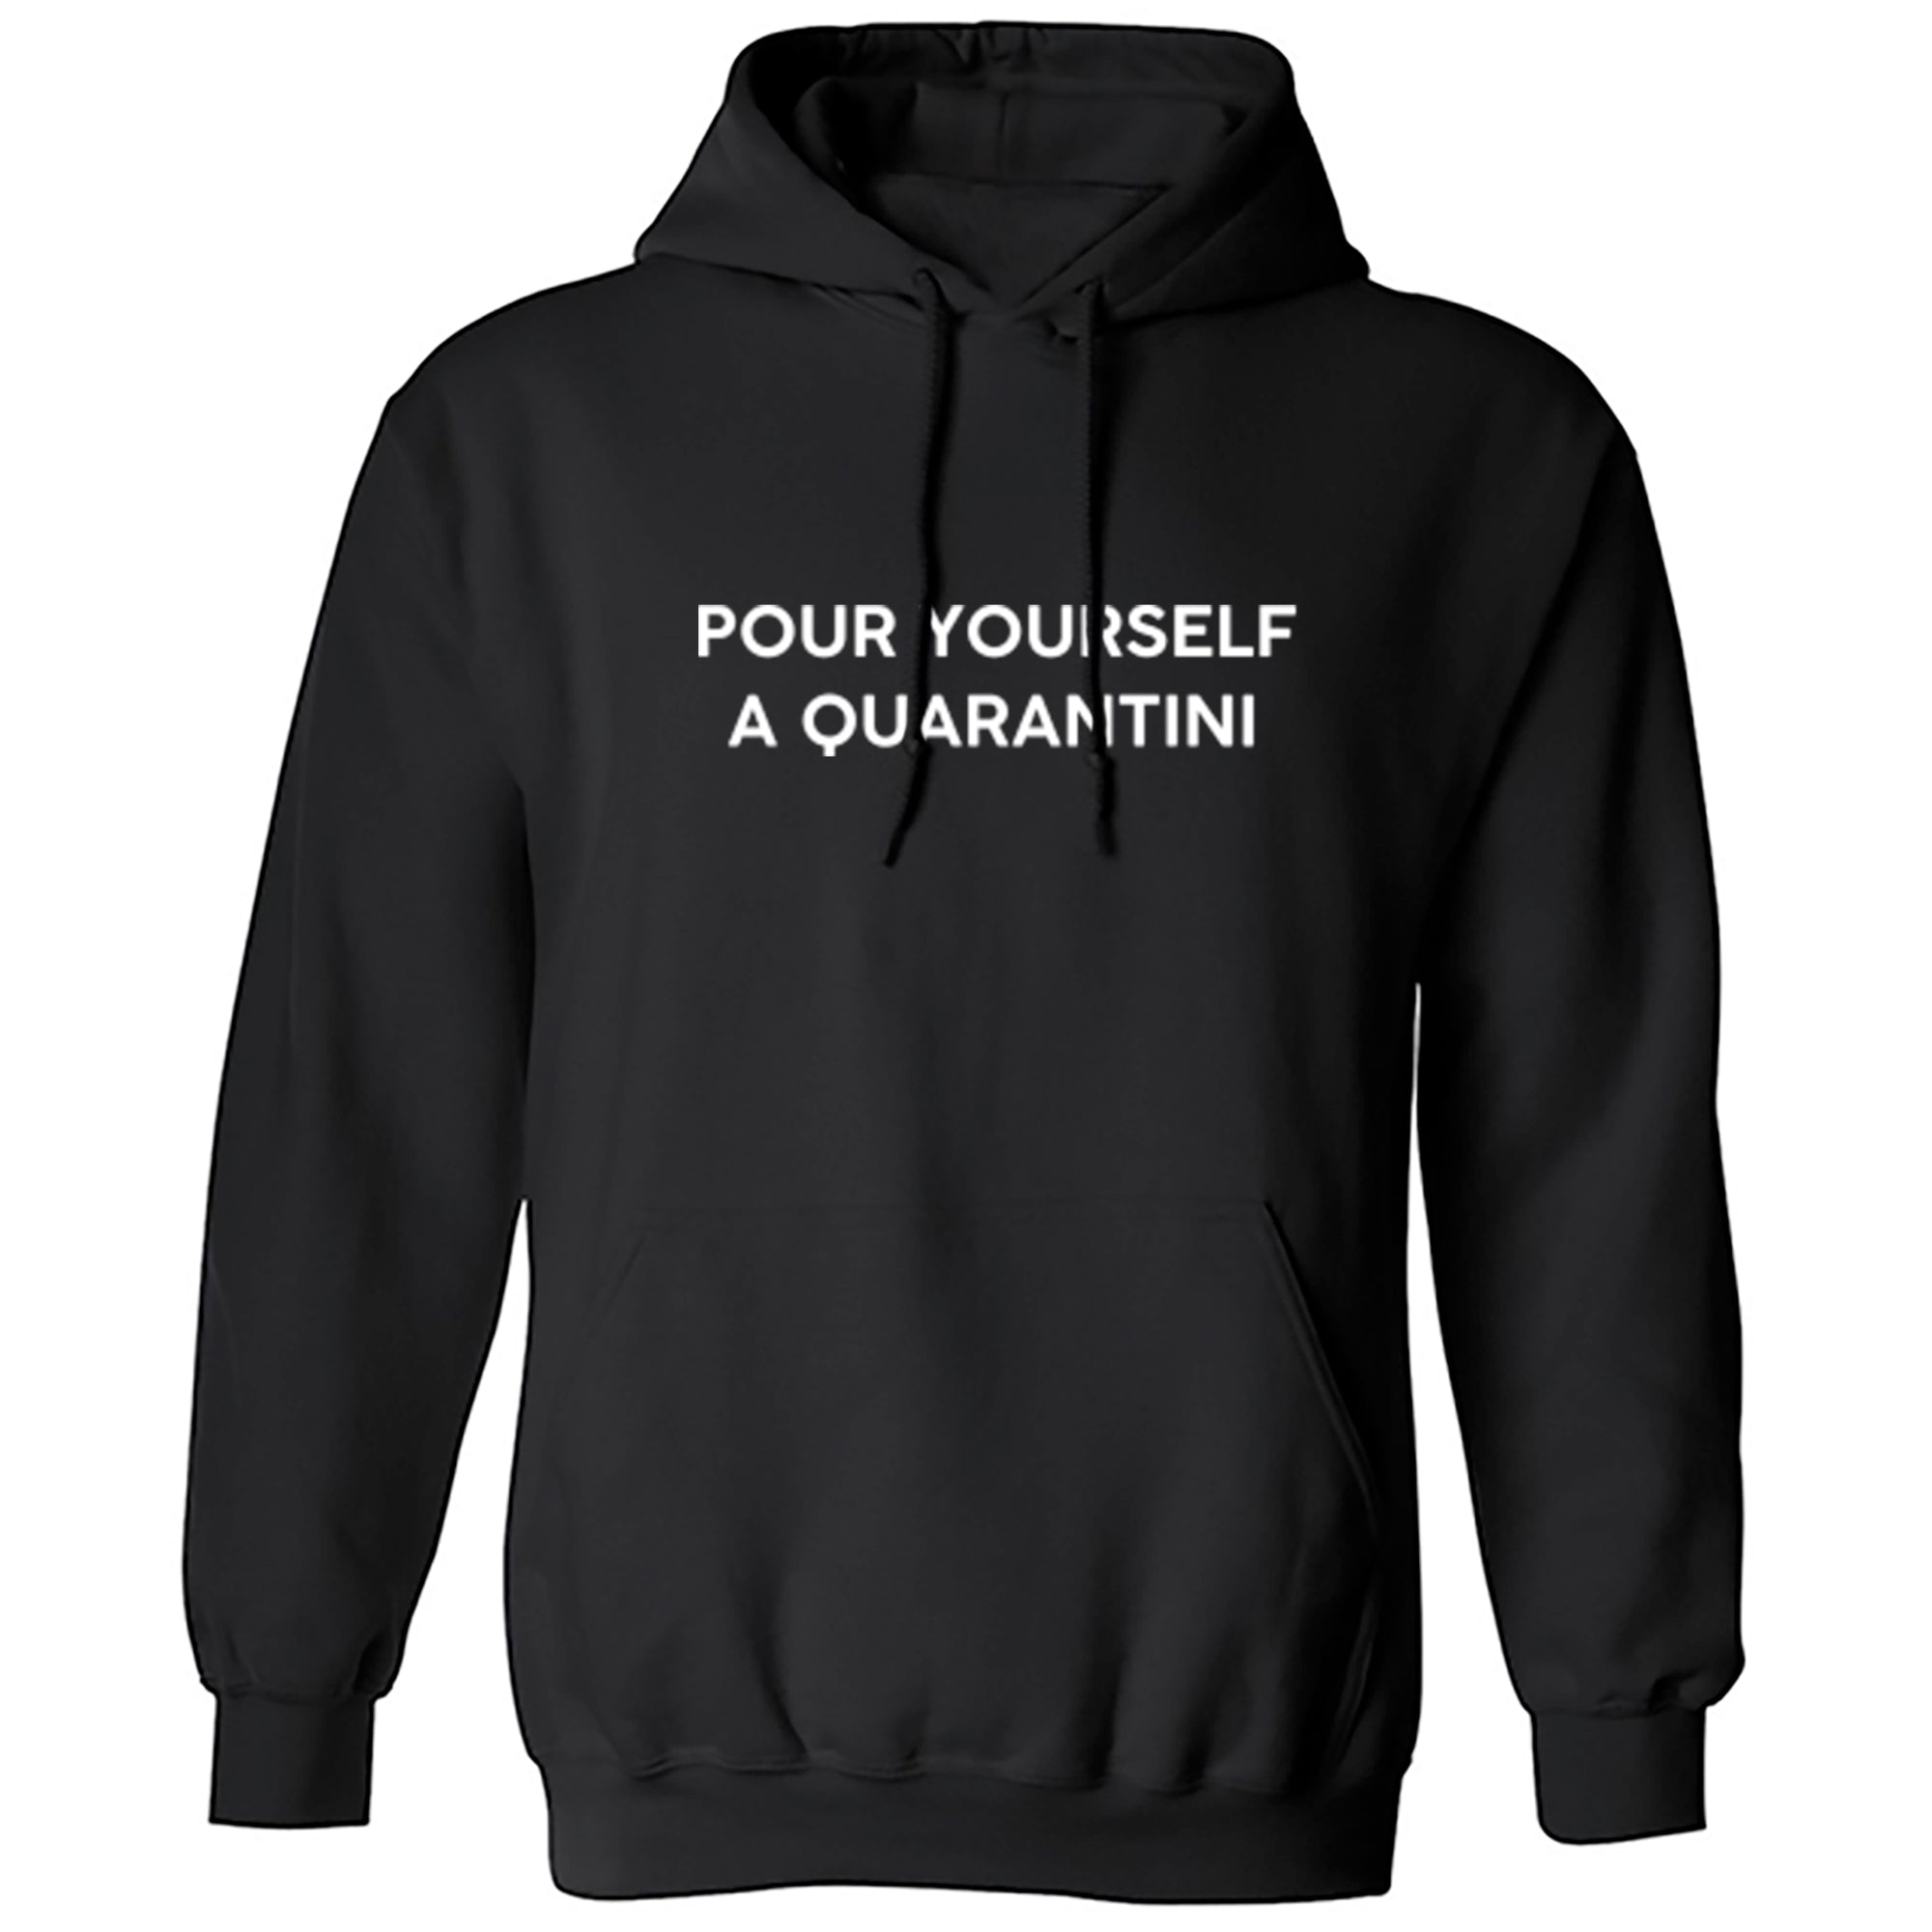 Pour Yourself A Quarantini Unisex Hoodie S1129 - Illustrated Identity Ltd.